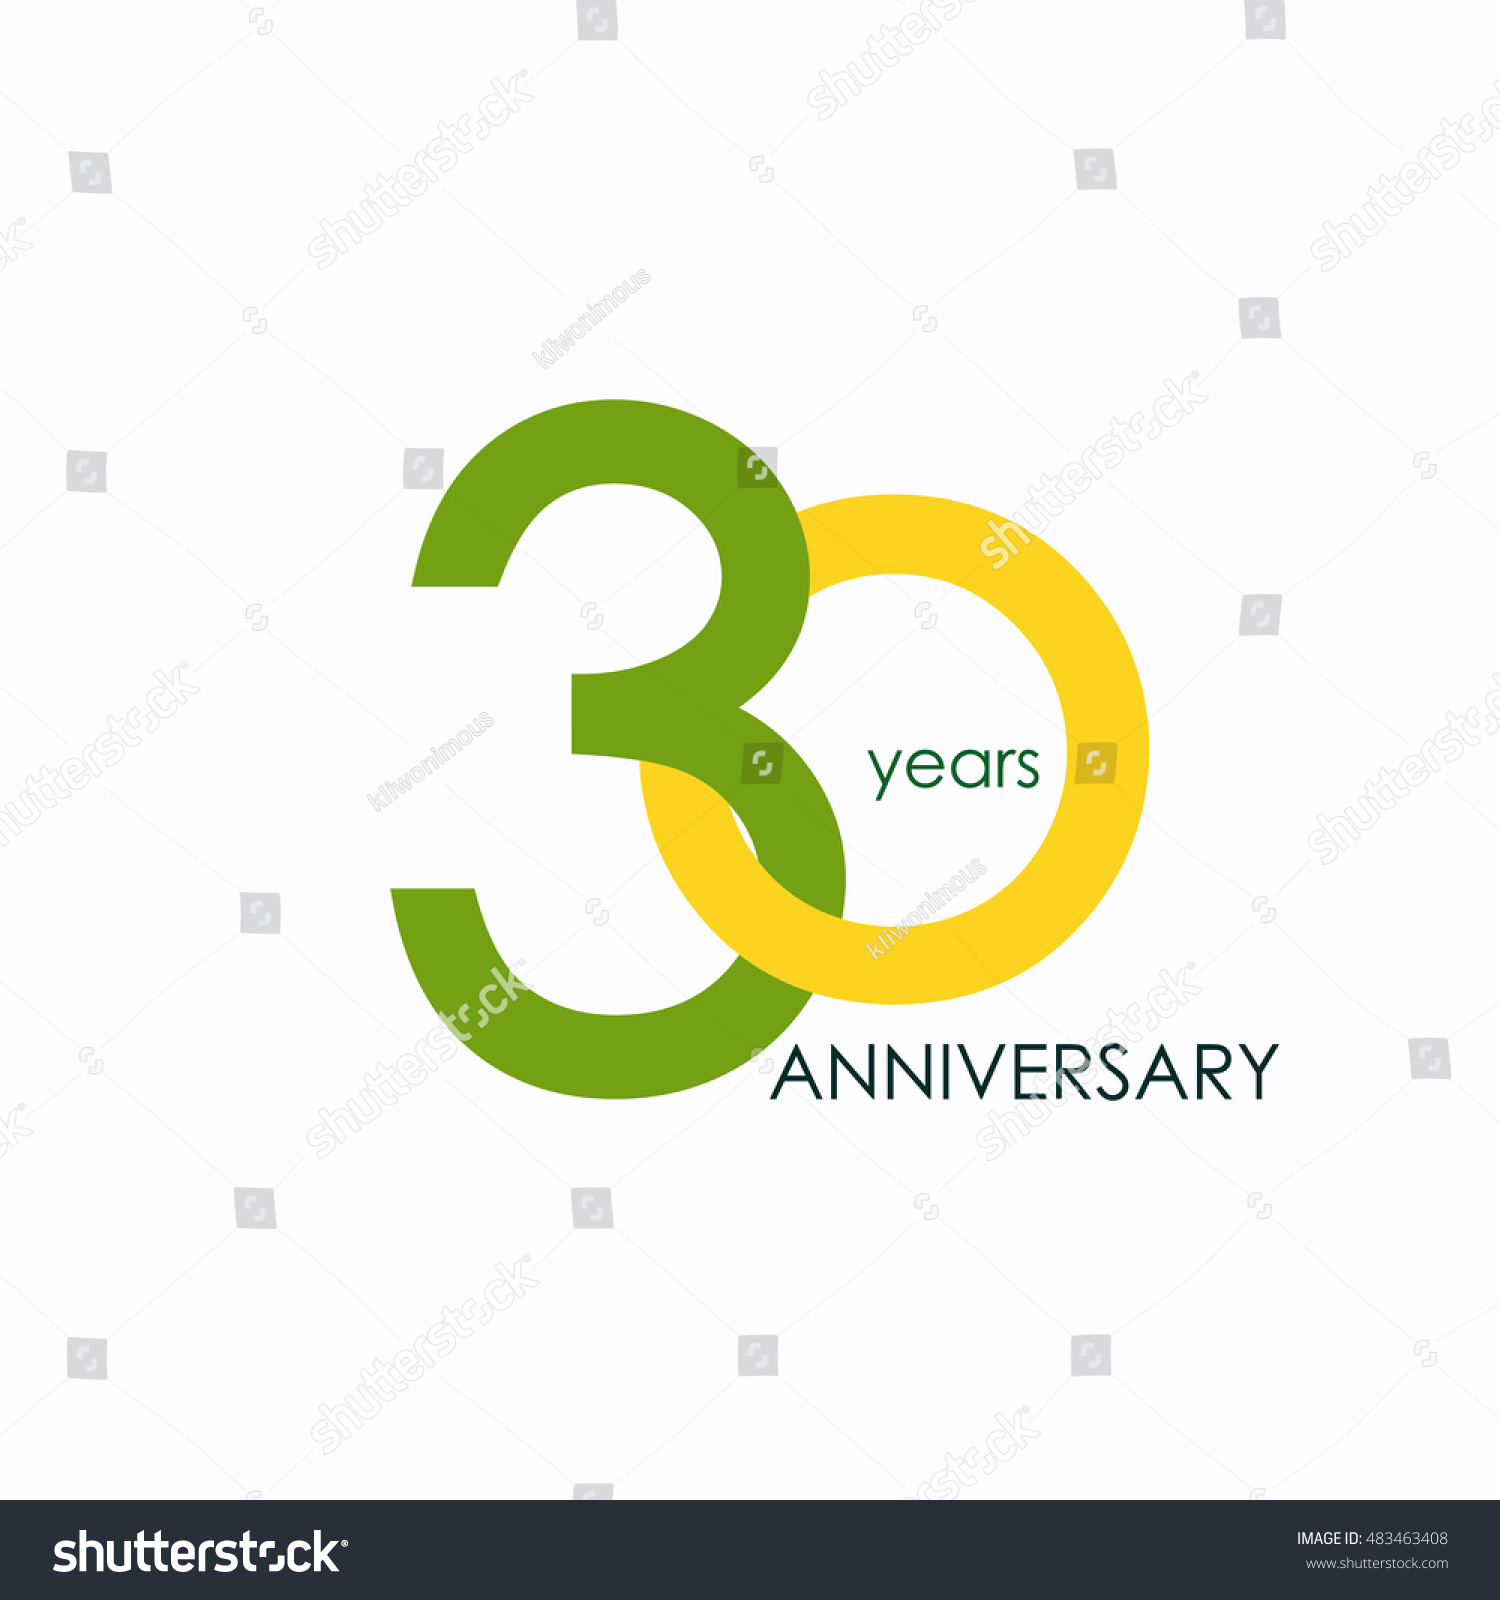 30 Years Anniversary Signs Symbols Which Stock Vector Royalty Free